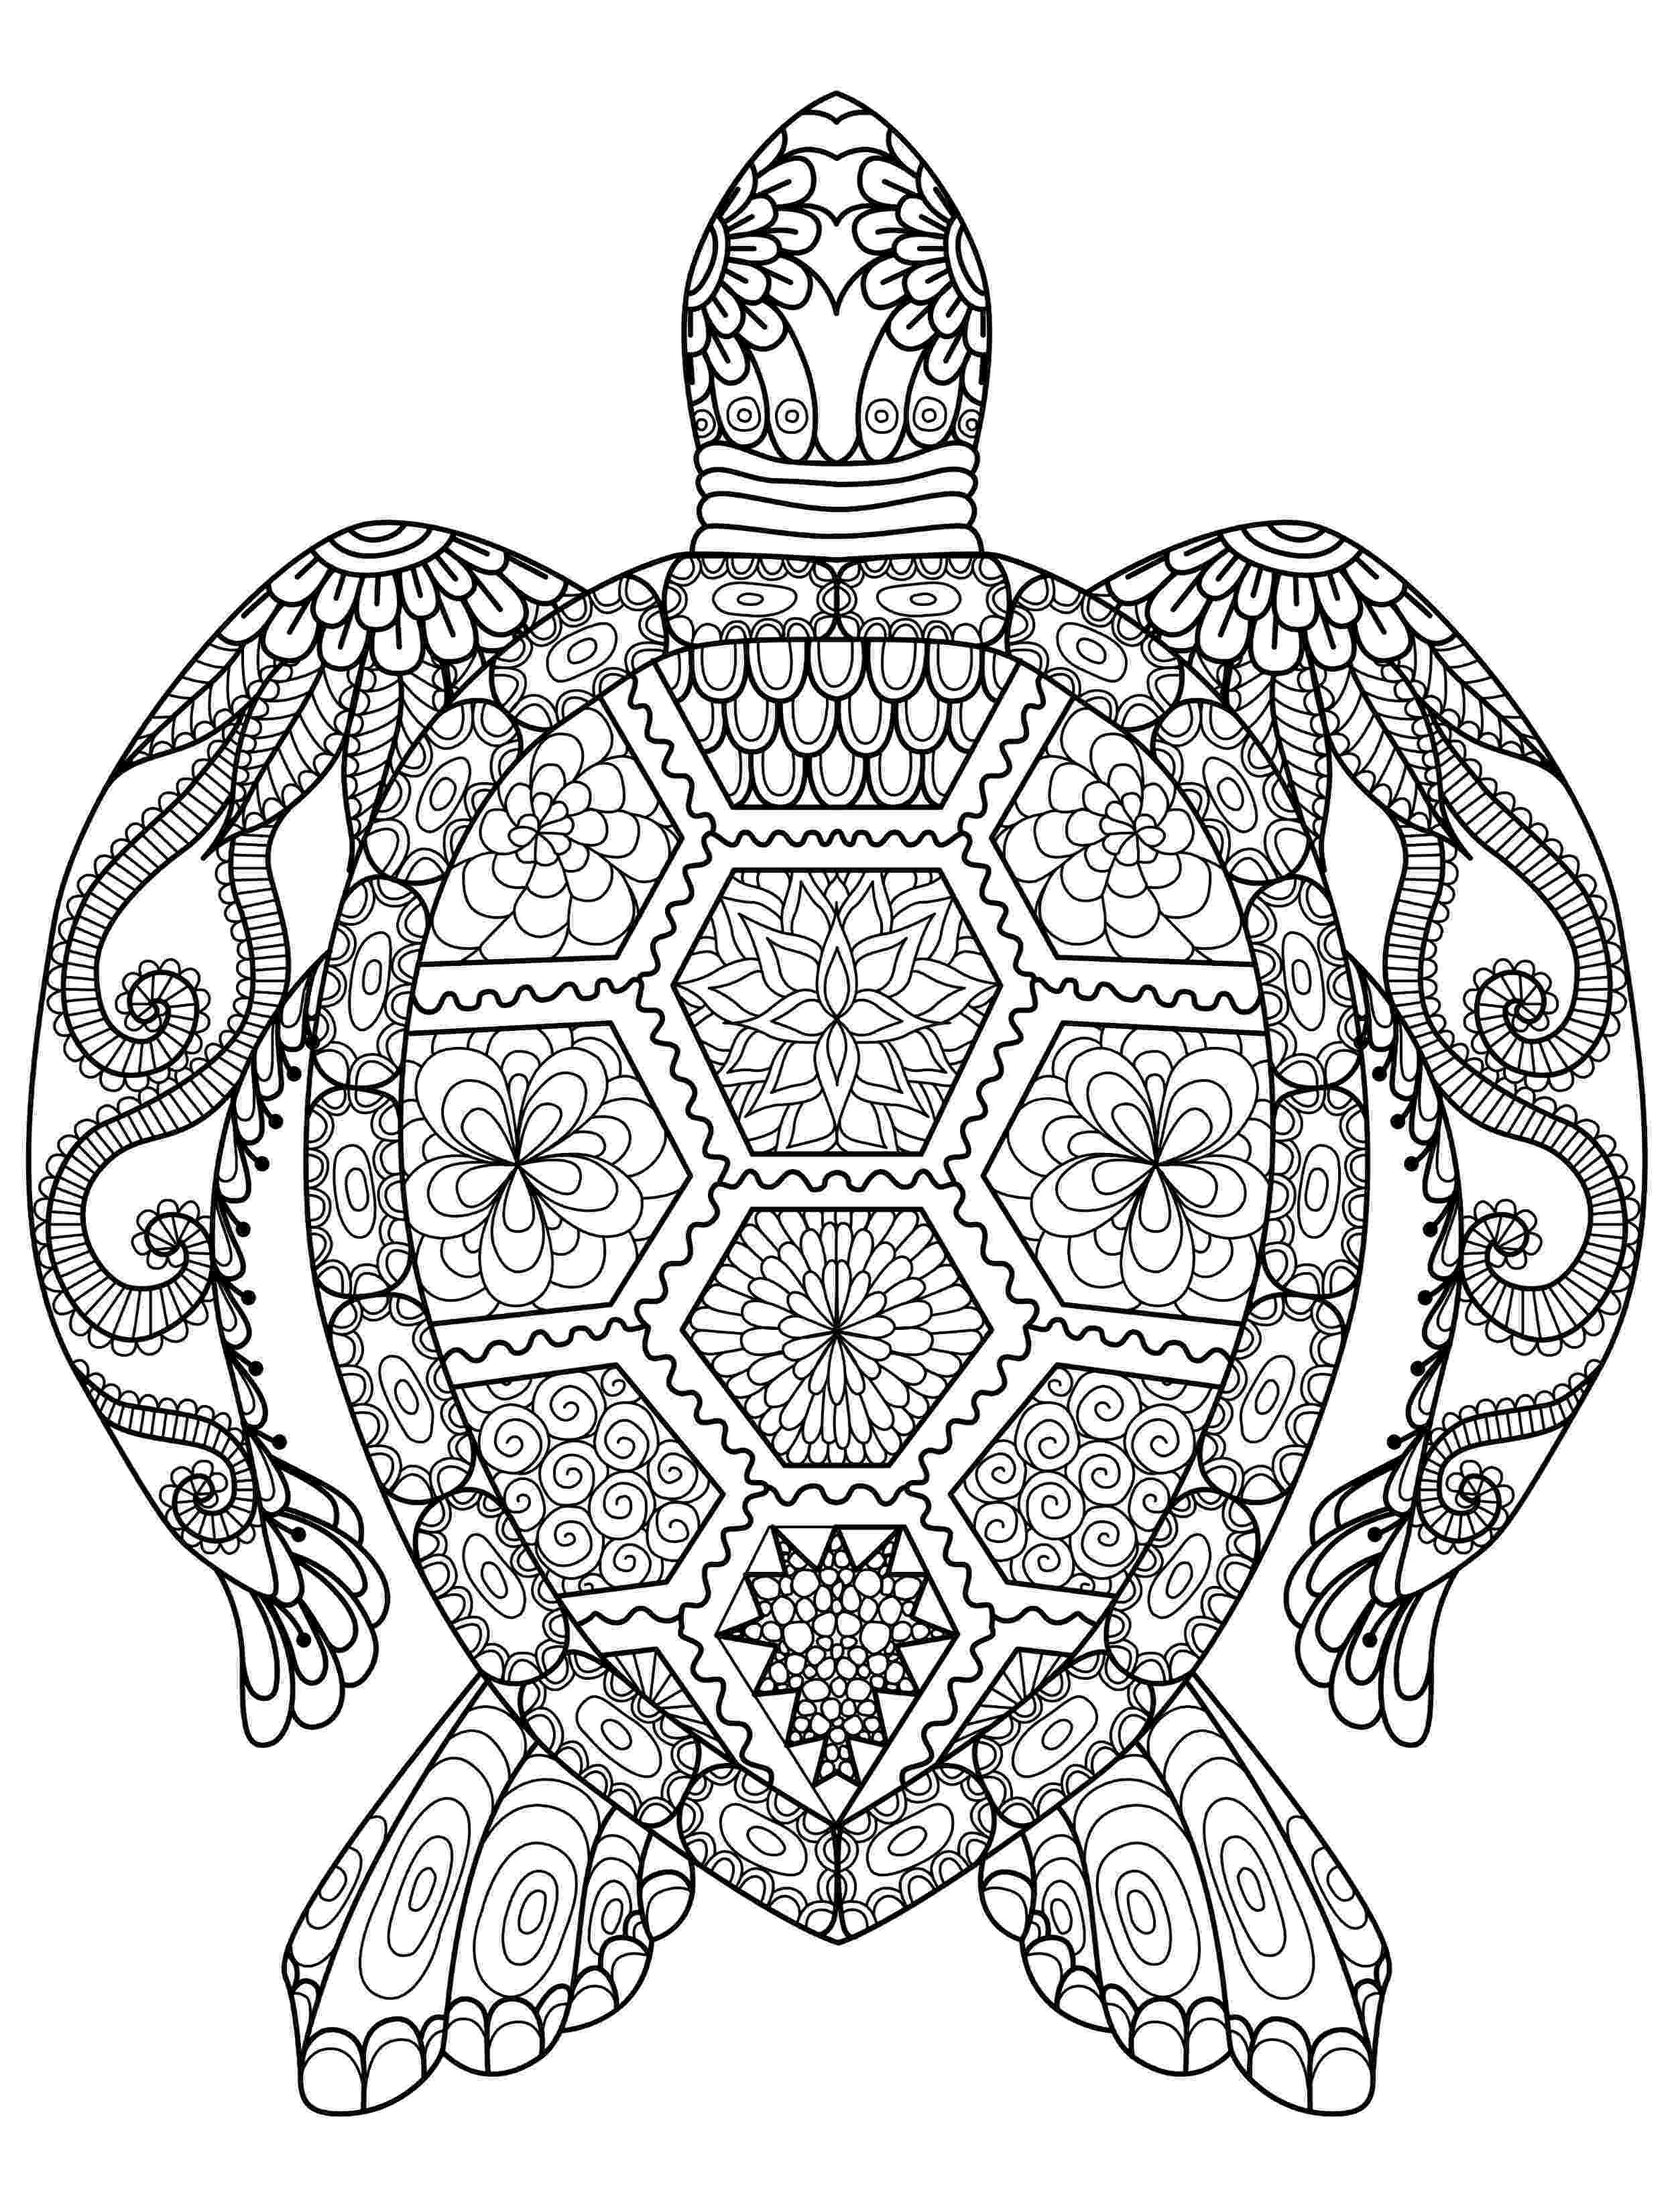 coloring pages animals all animals coloring pages download and print for free coloring pages animals